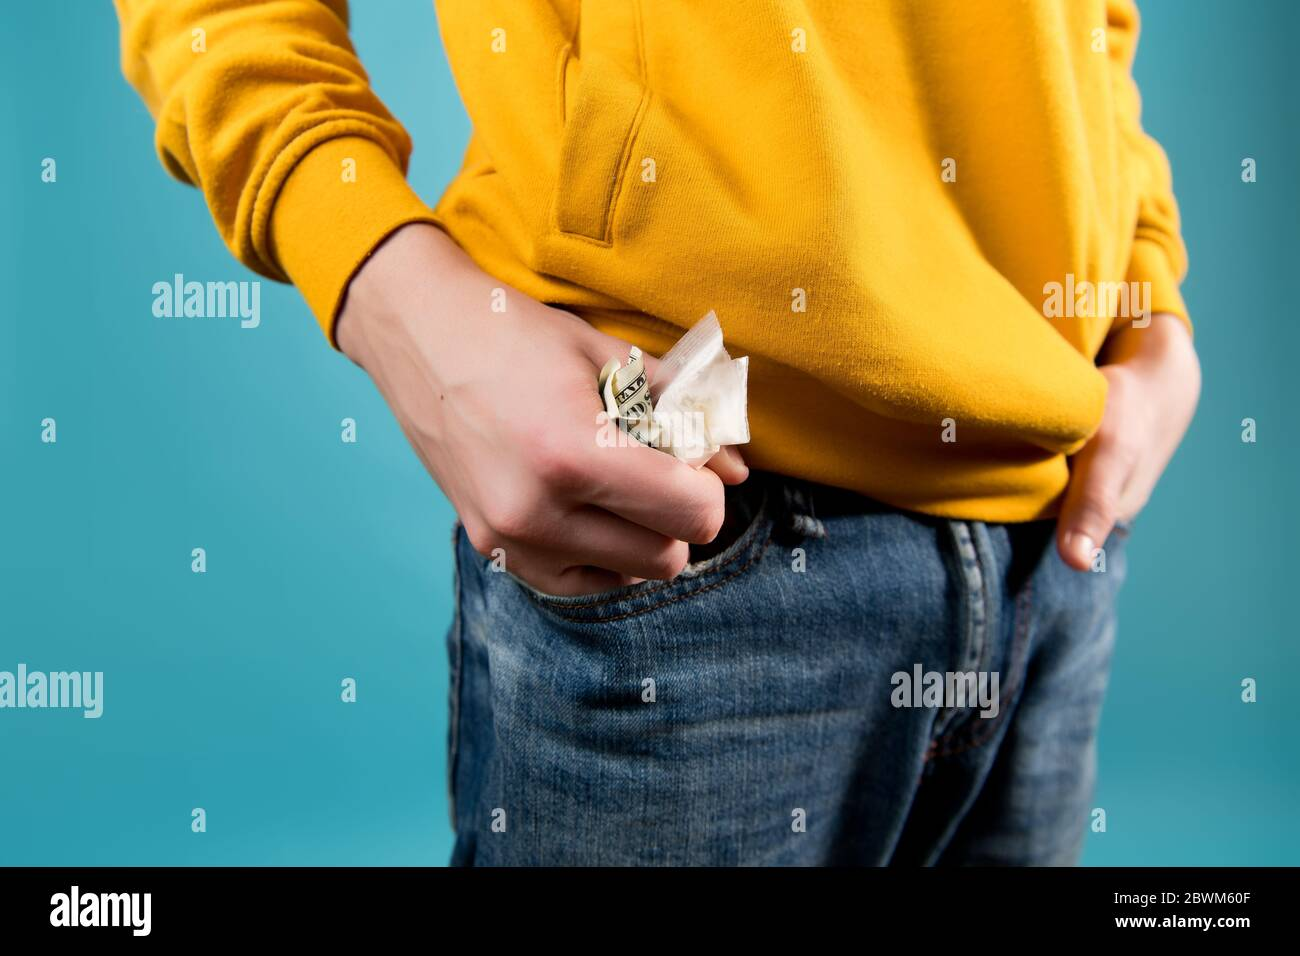 young guy takes out or puts crumpled dollars and a drug bag in his jeans pocket. Close up, no face Stock Photo